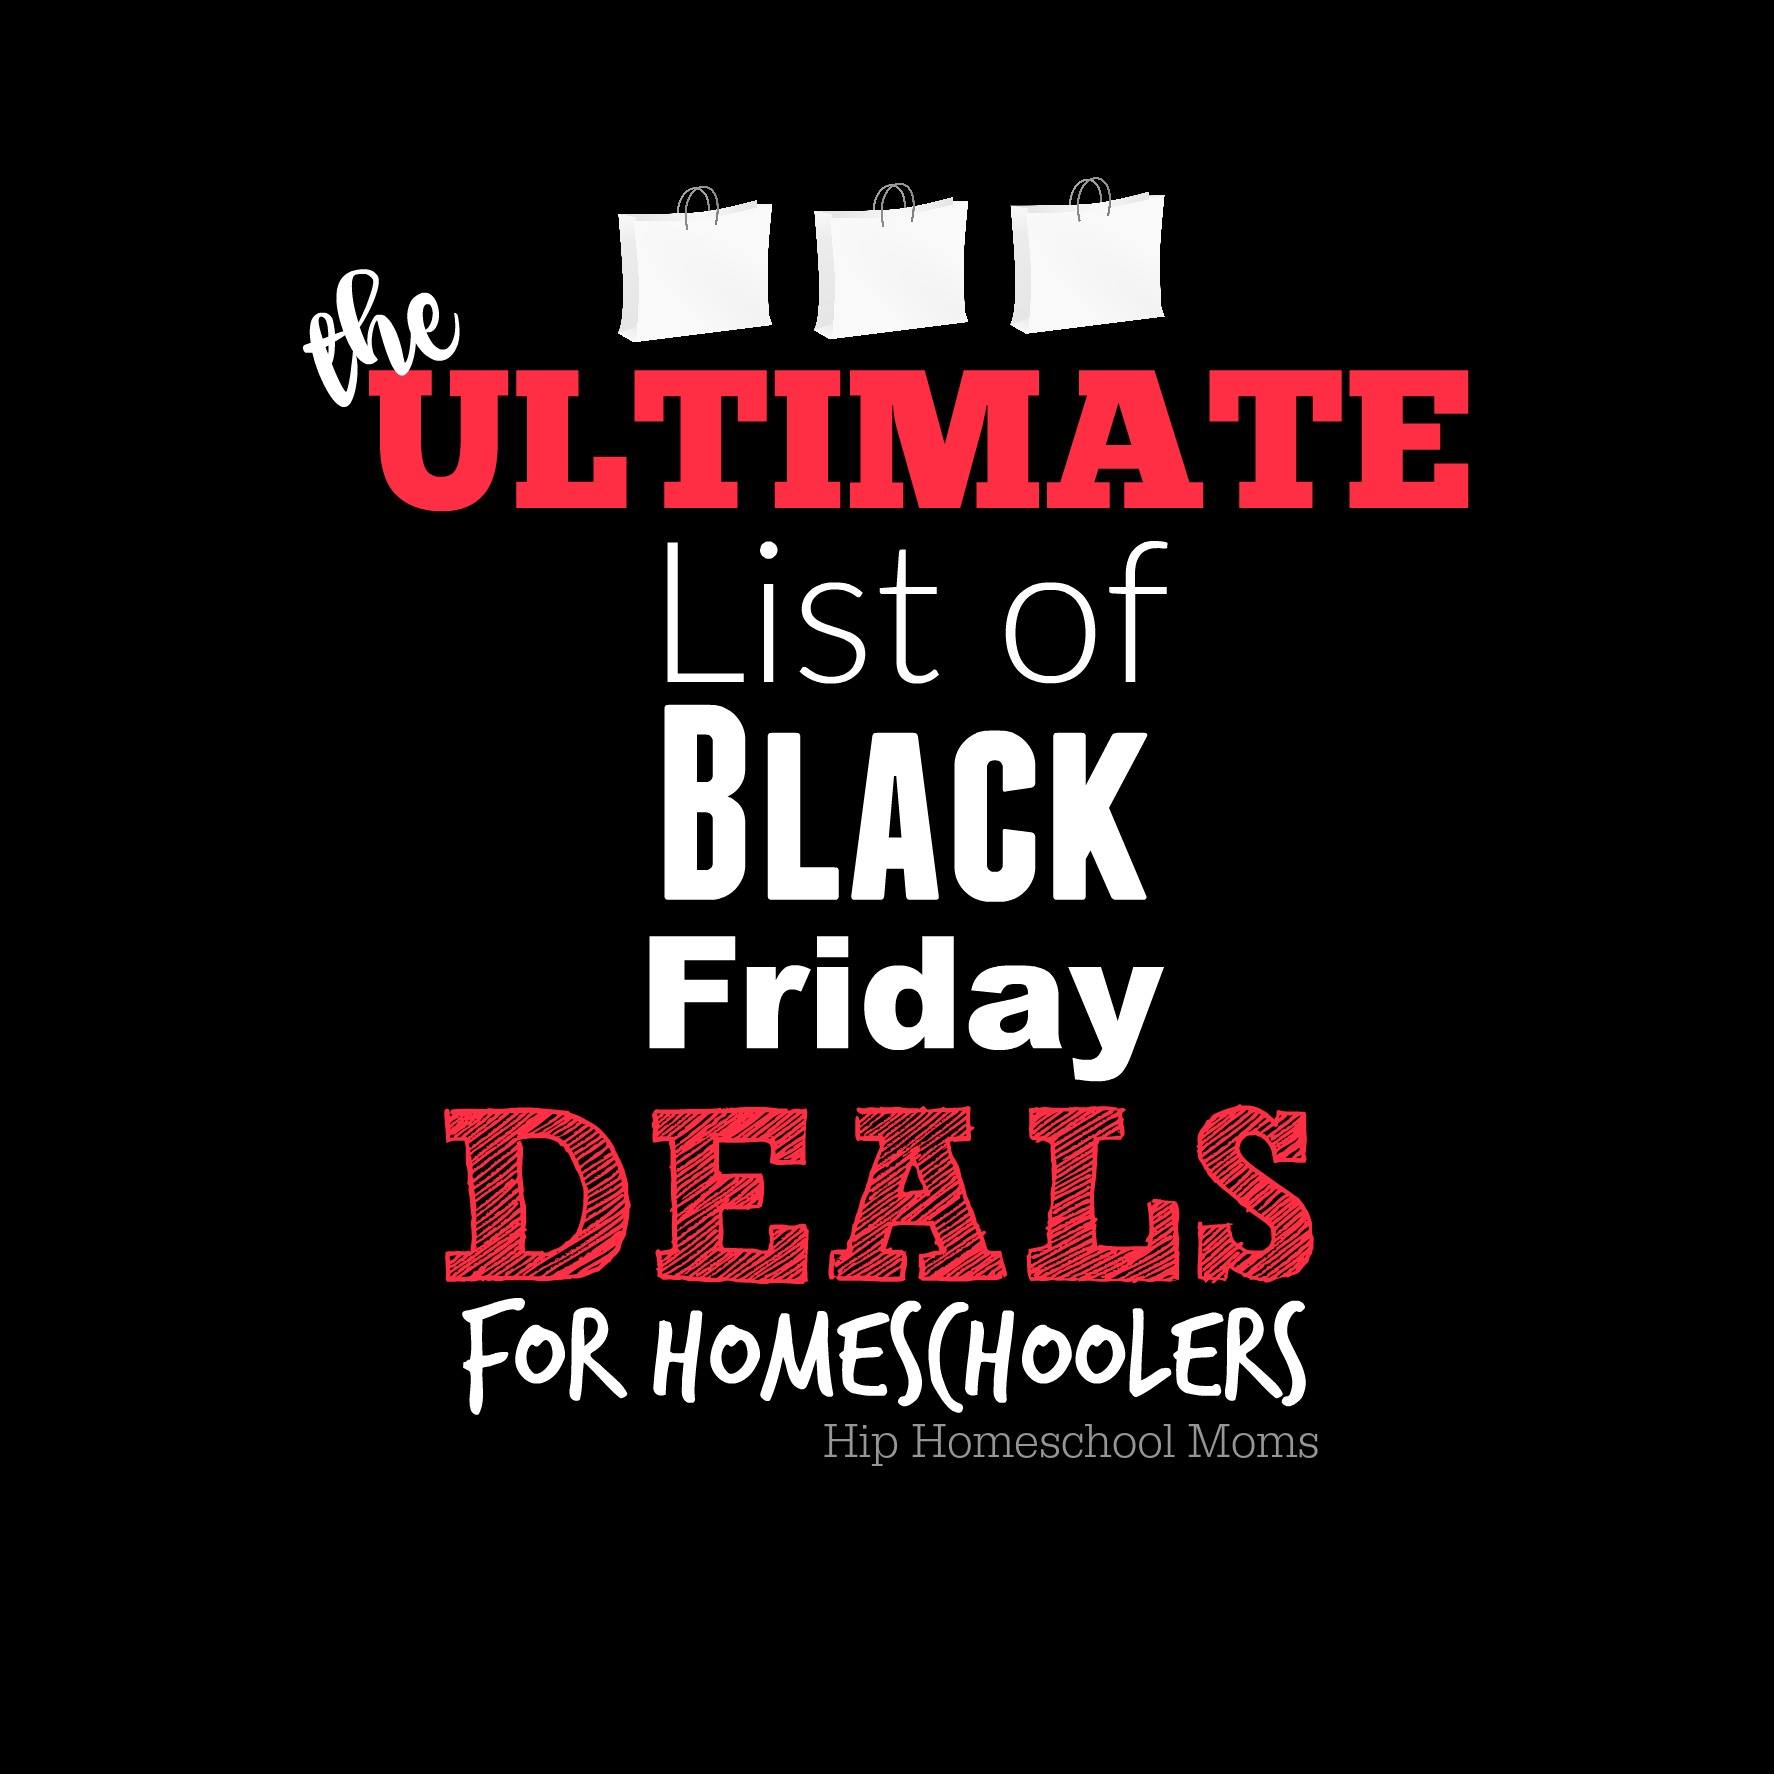 Ultimate List of Black Friday Deals for Homeschoolers